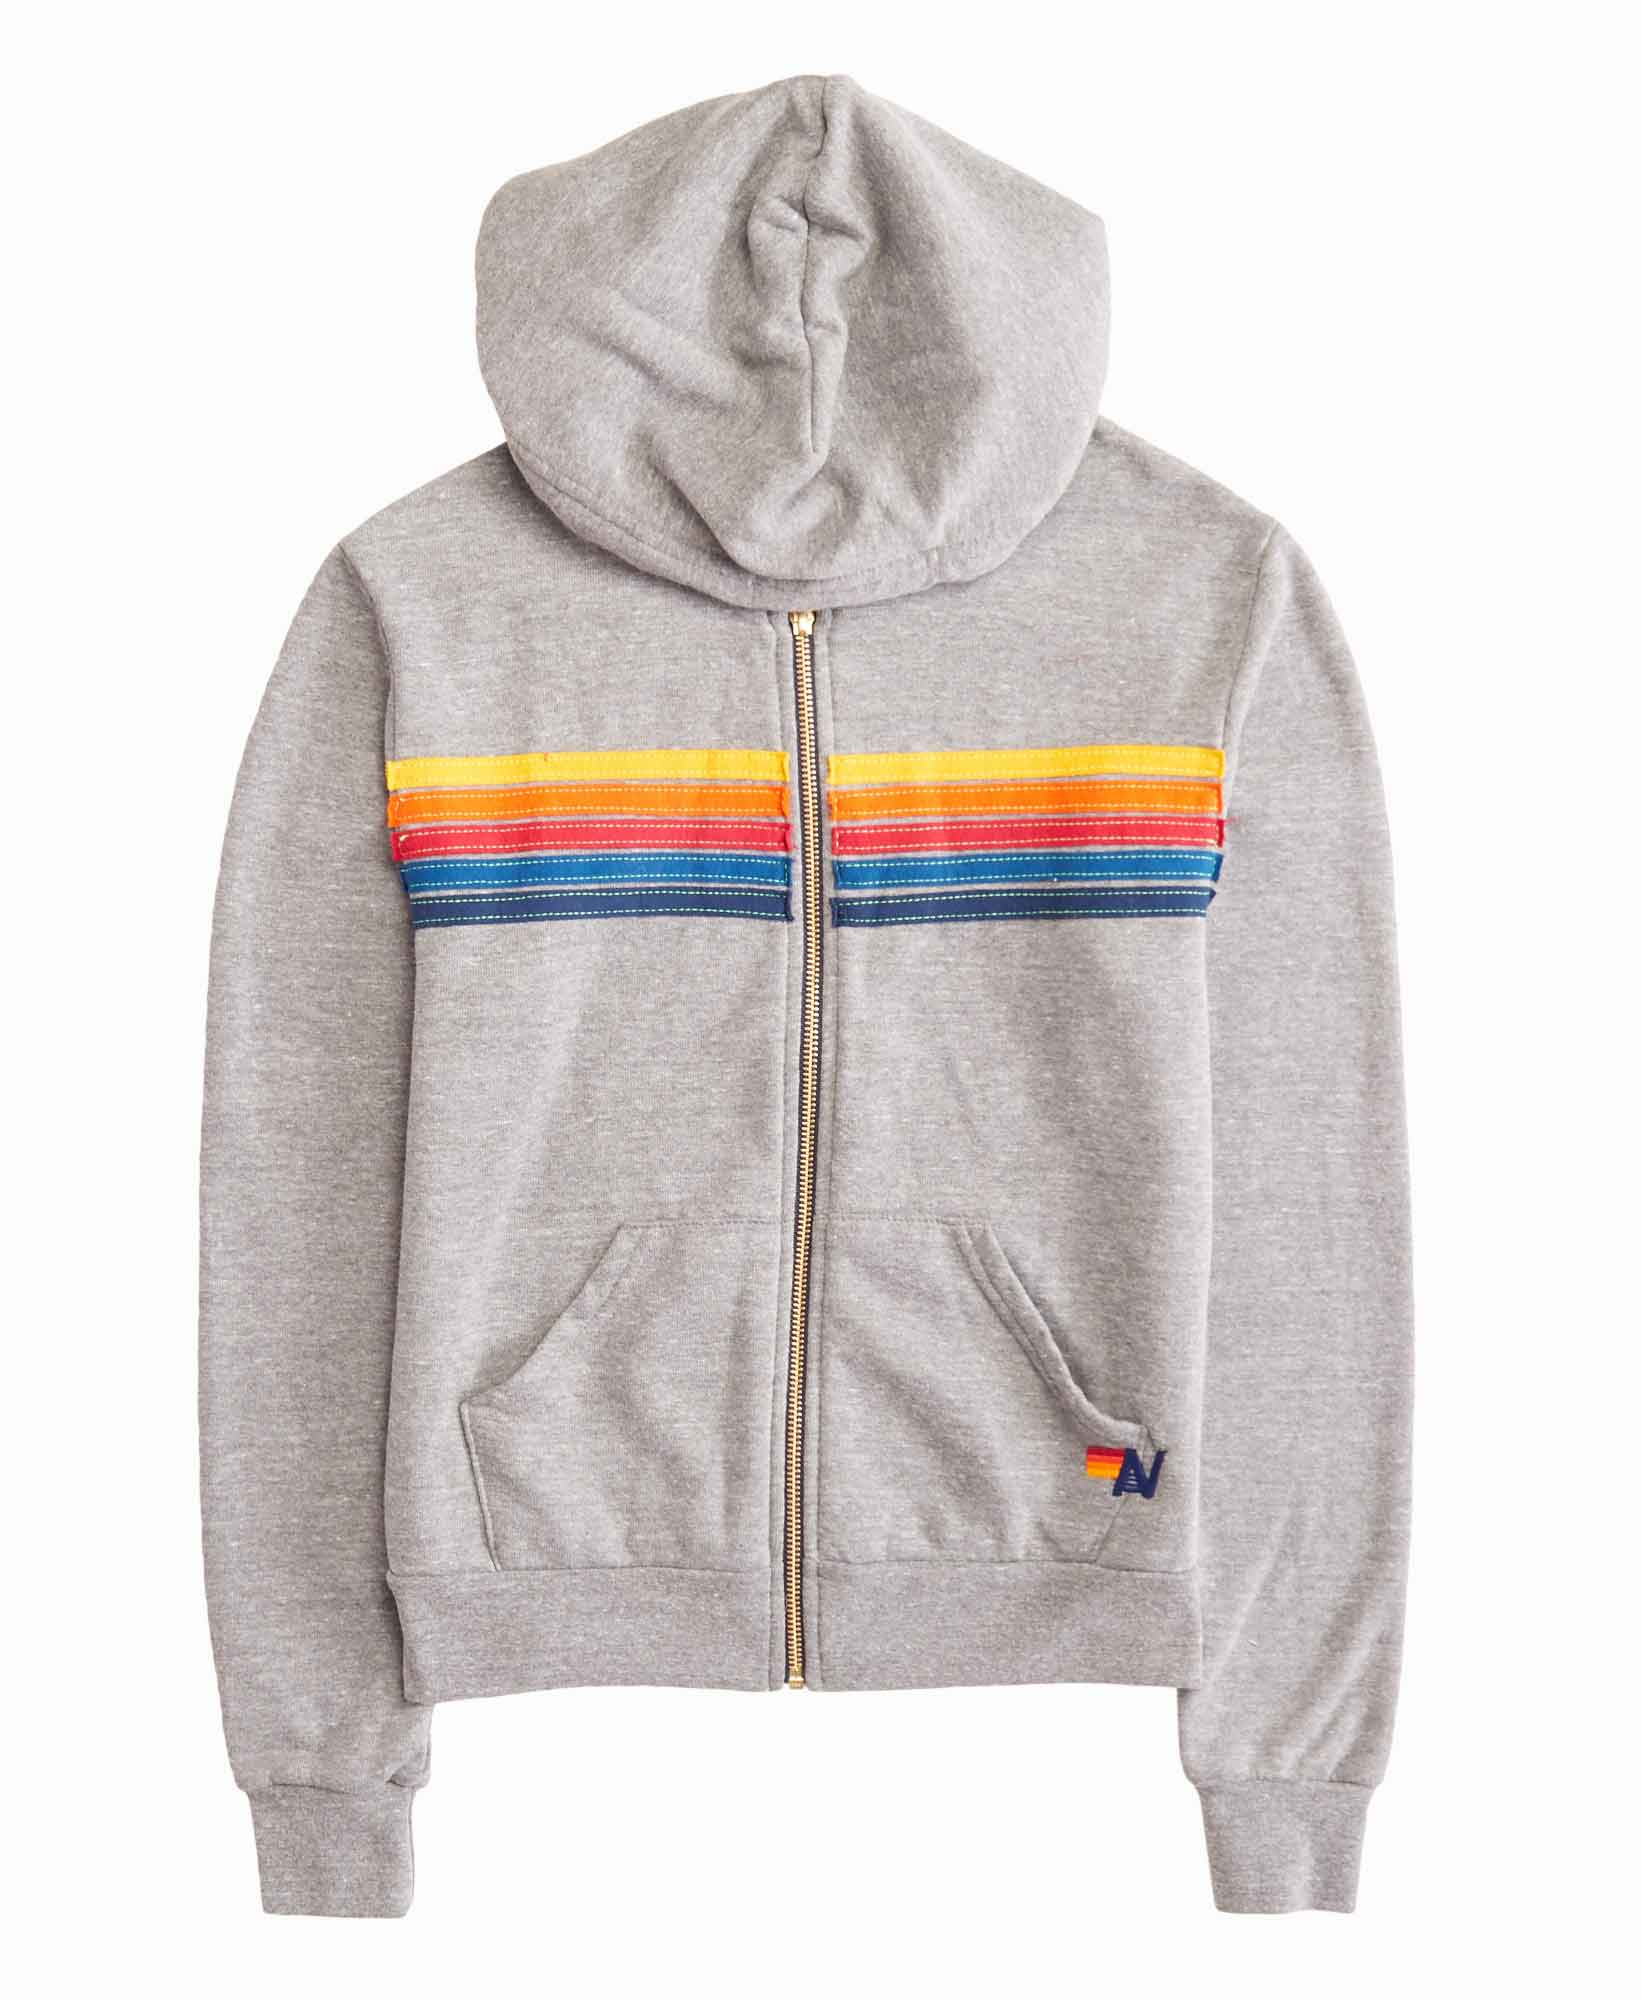 Aviator Nation 5 Stripe Hoodie Sweatshirt